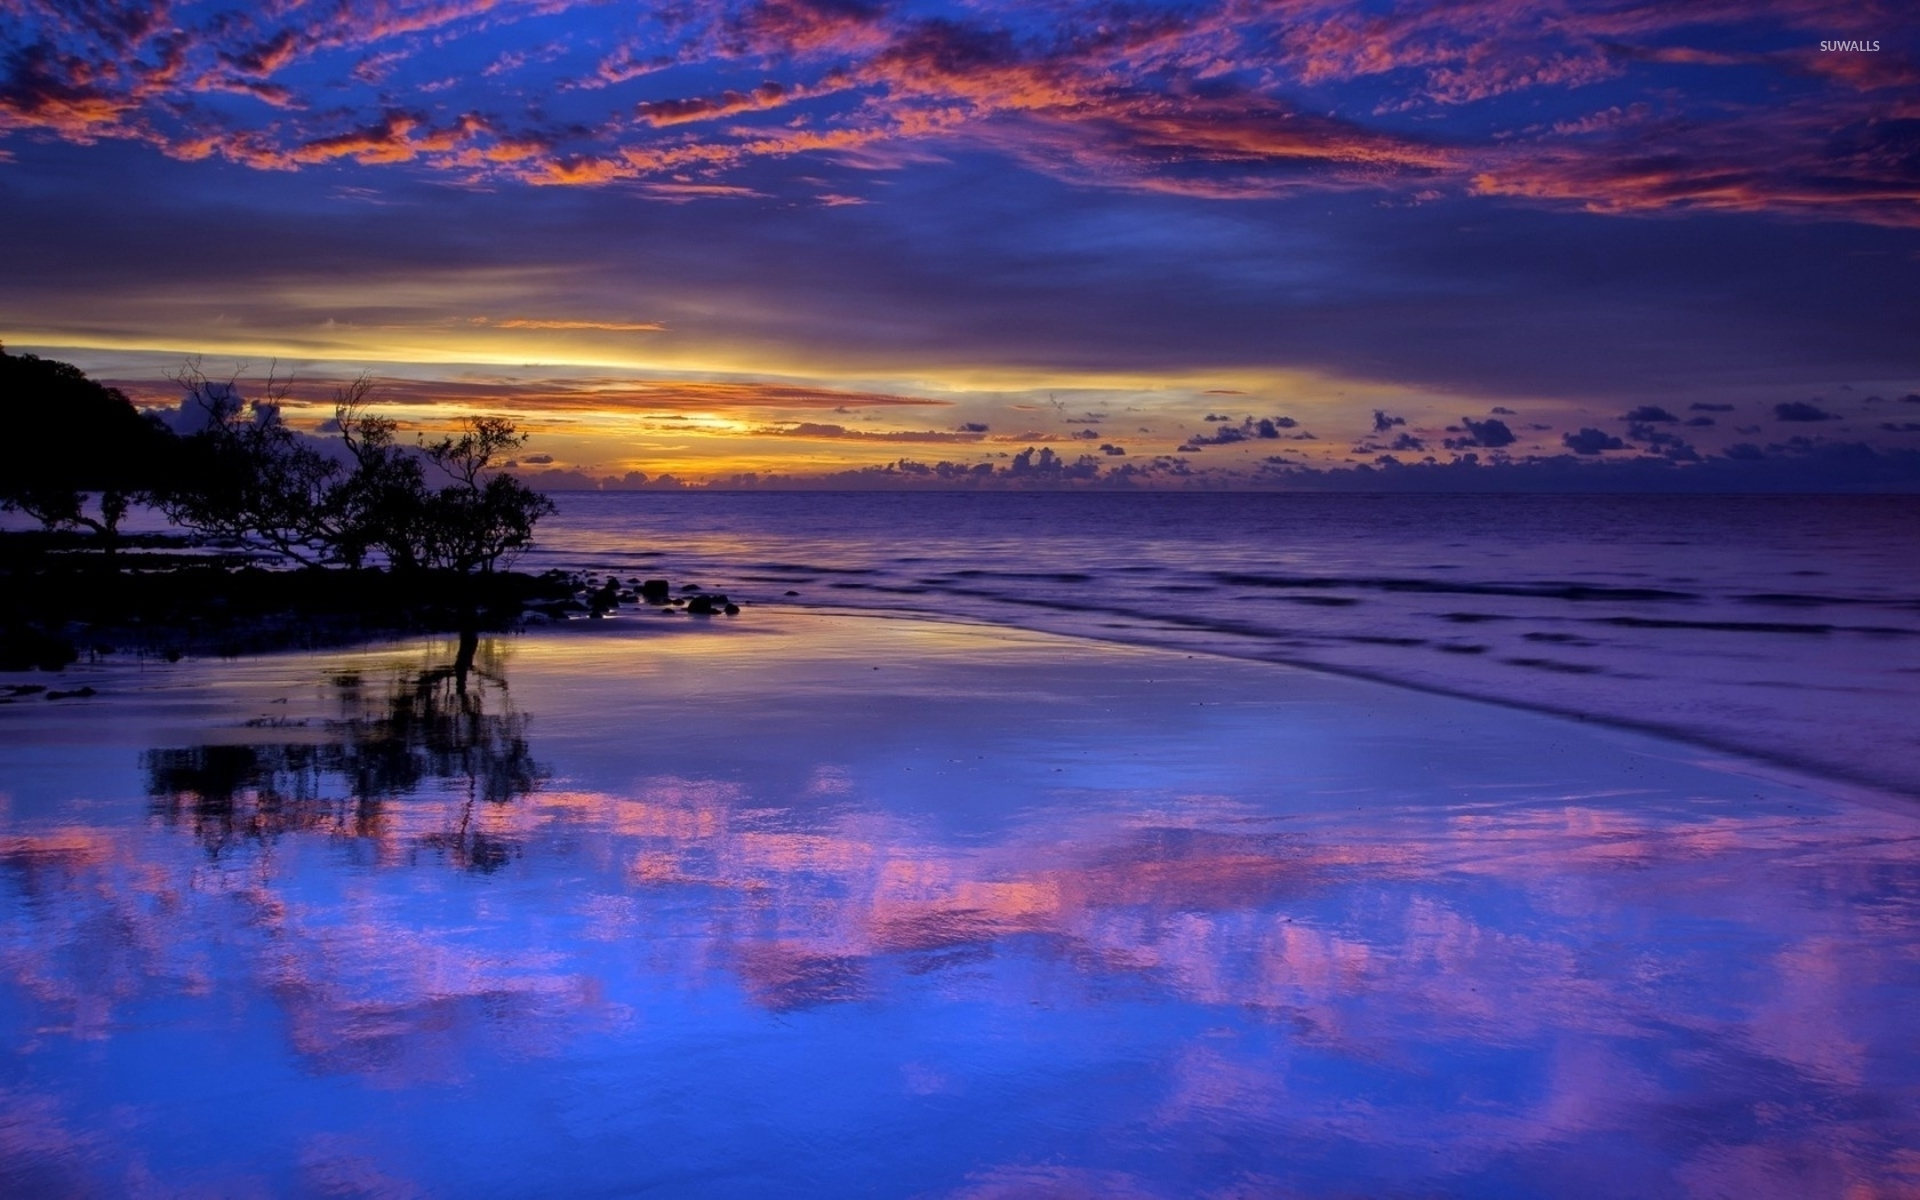 amazing purple sunset clouds reflected in the wet beach